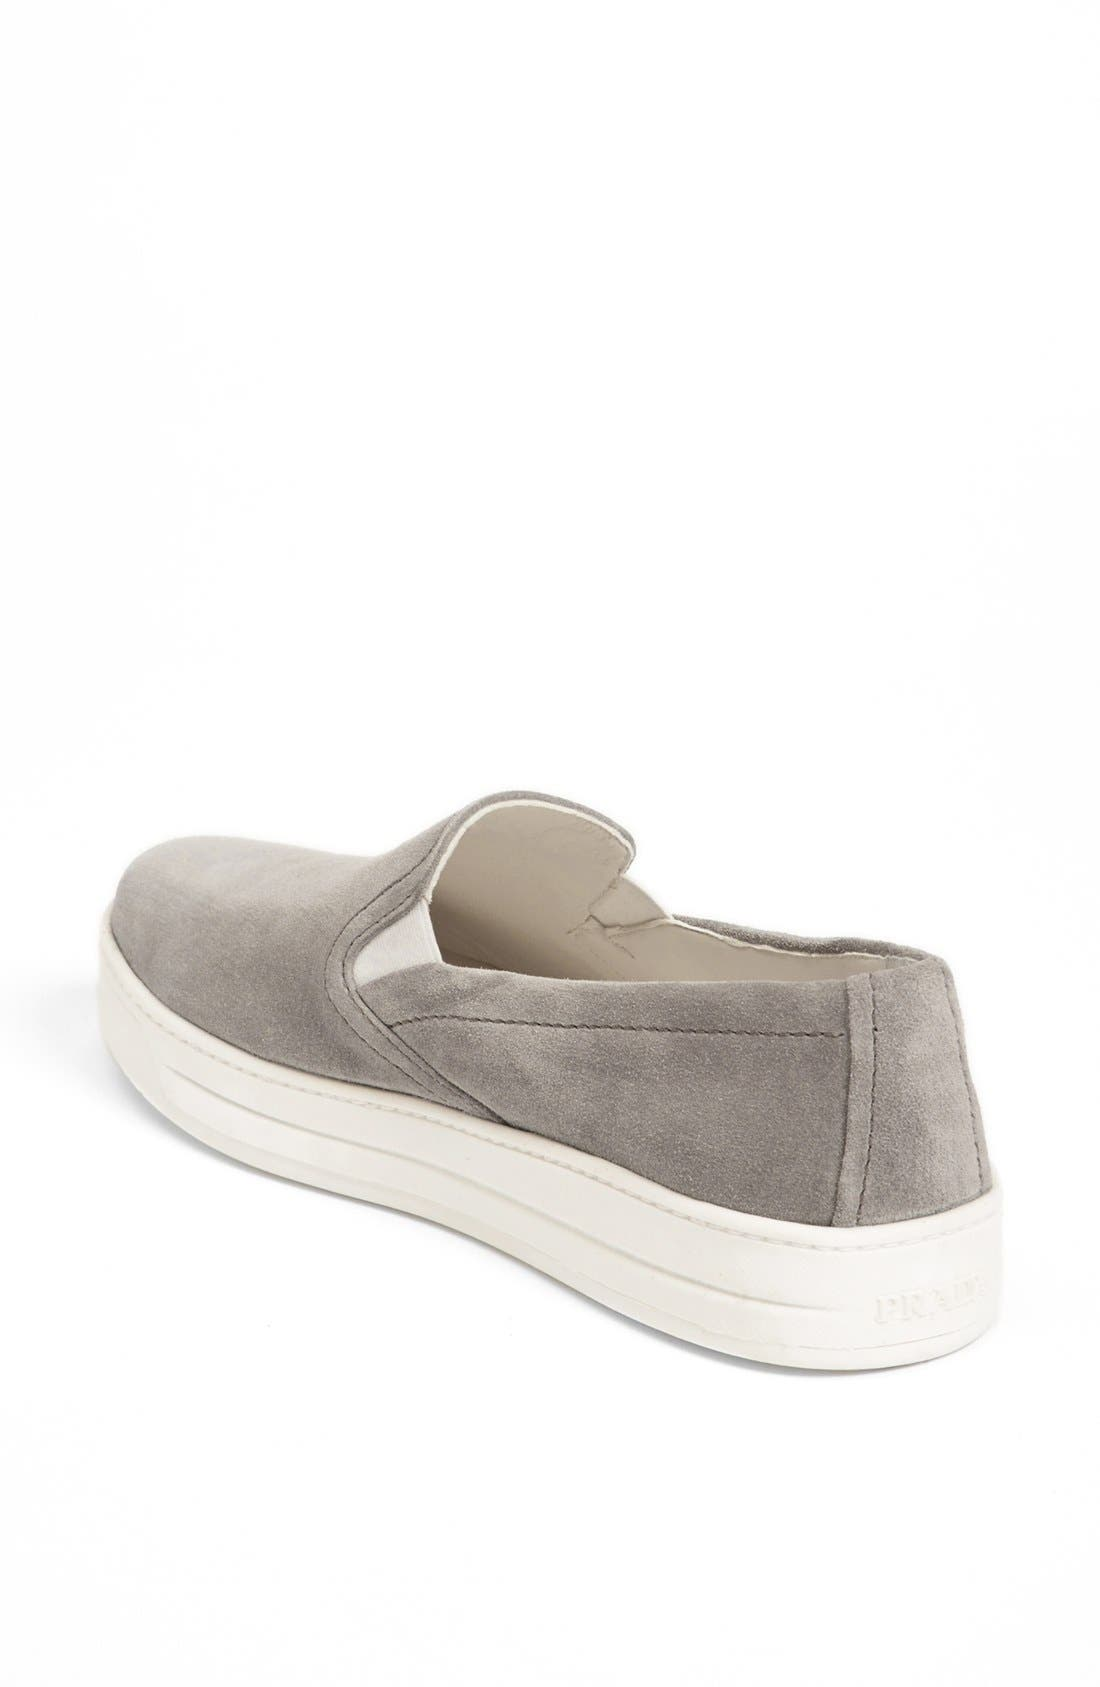 Slip-On Sneaker,                             Alternate thumbnail 48, color,